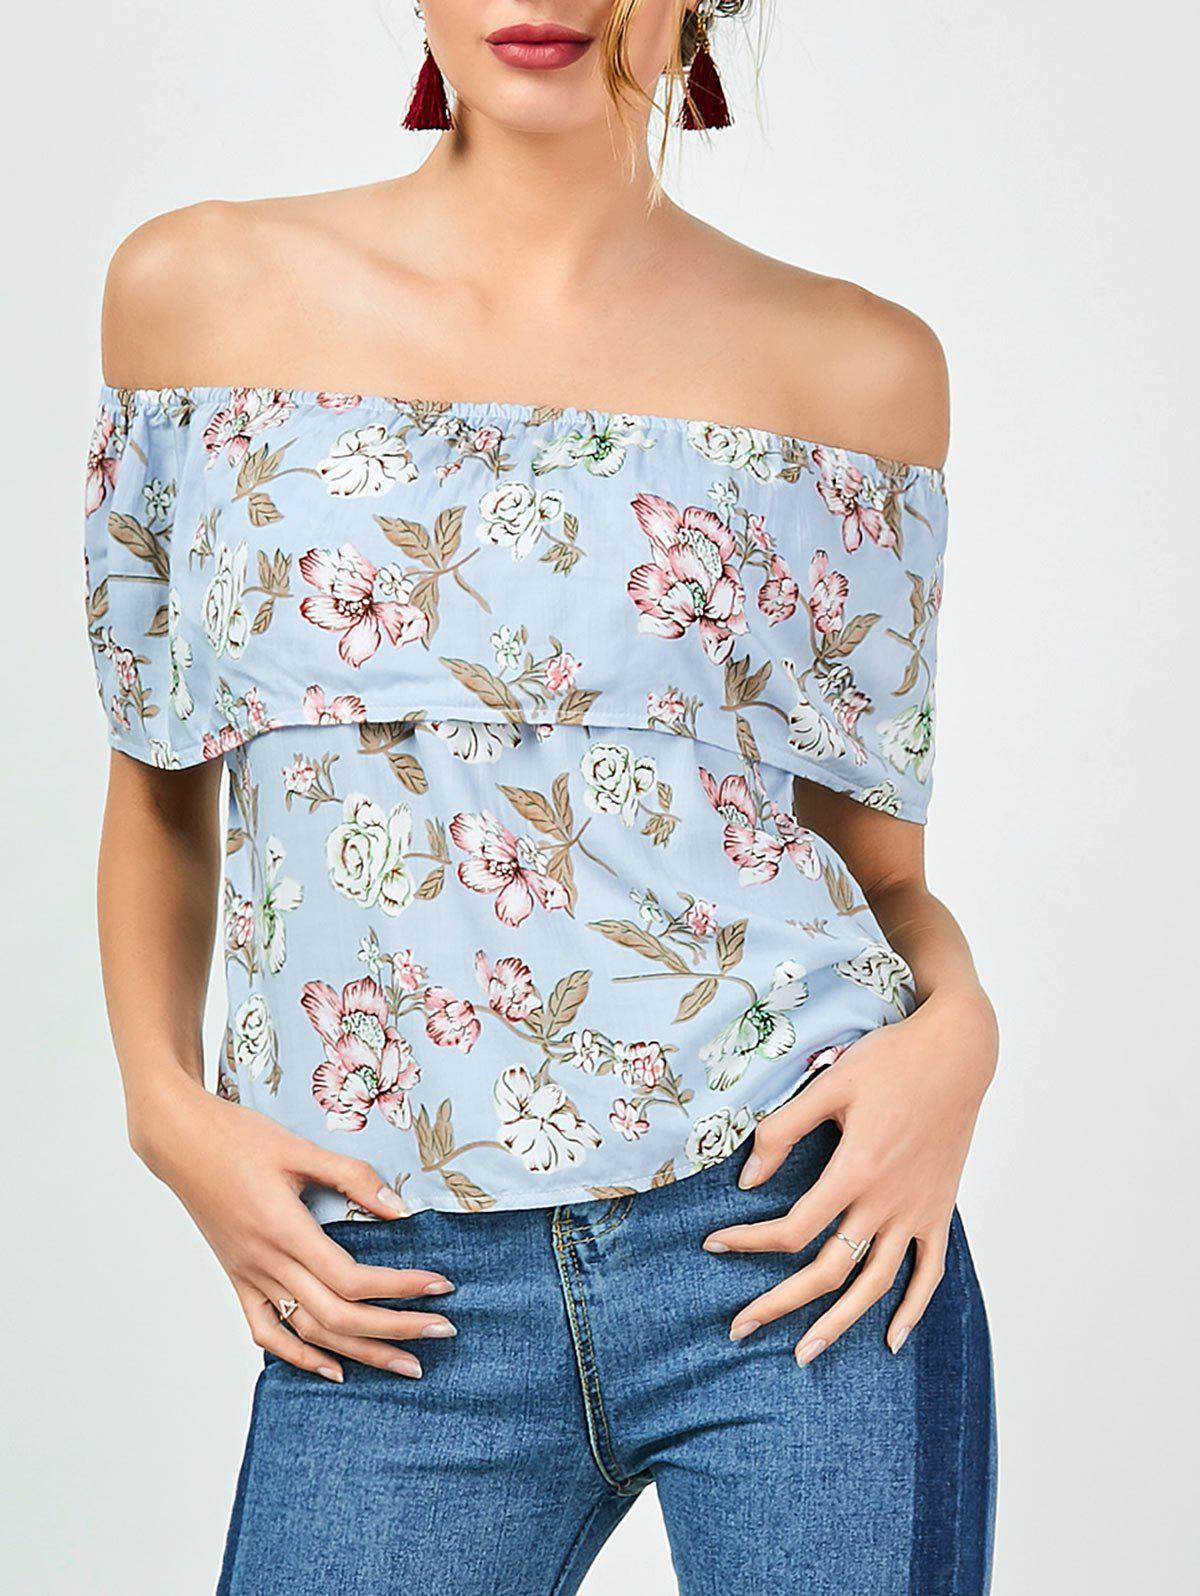 Off The Shoulder Ruffle Floral Top - LIGHT BLUE M